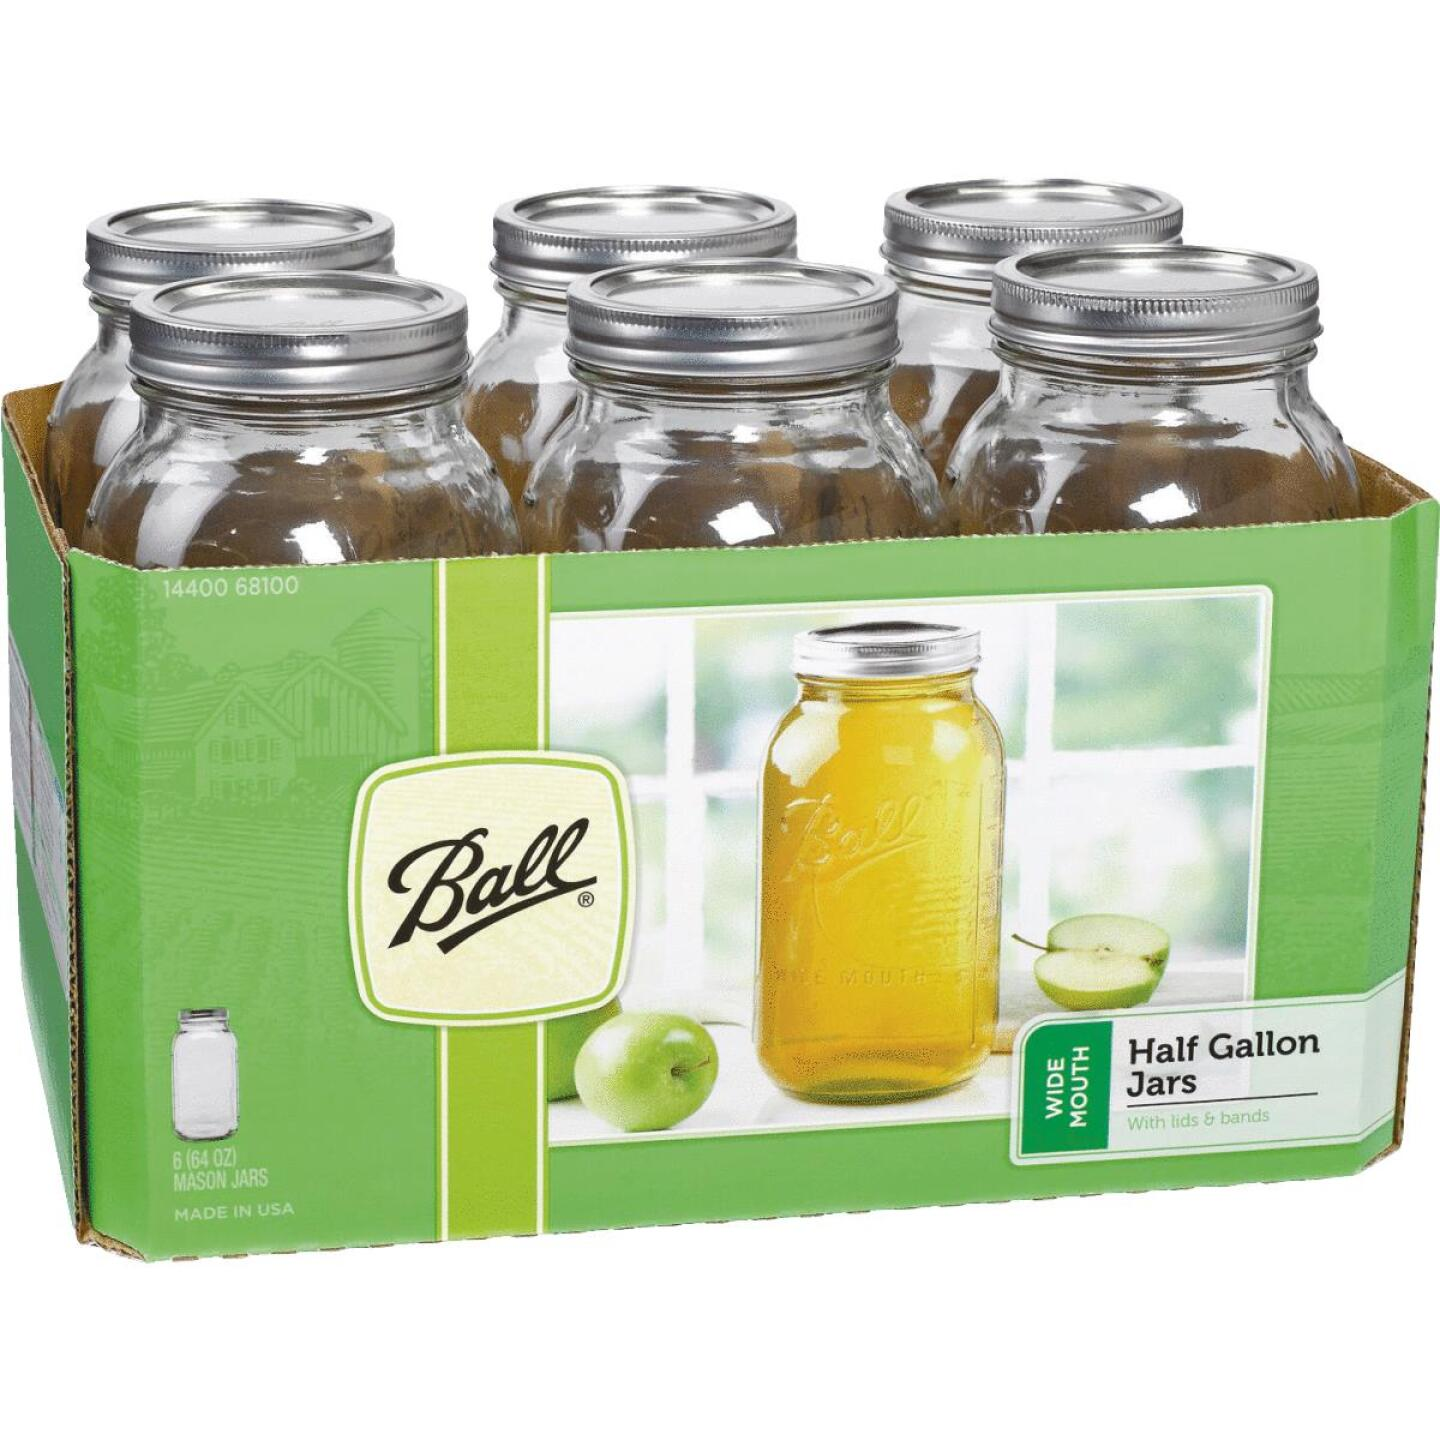 Ball 1/2 Gal. Wide Mouth Mason Canning Jar (6-Count) Image 1